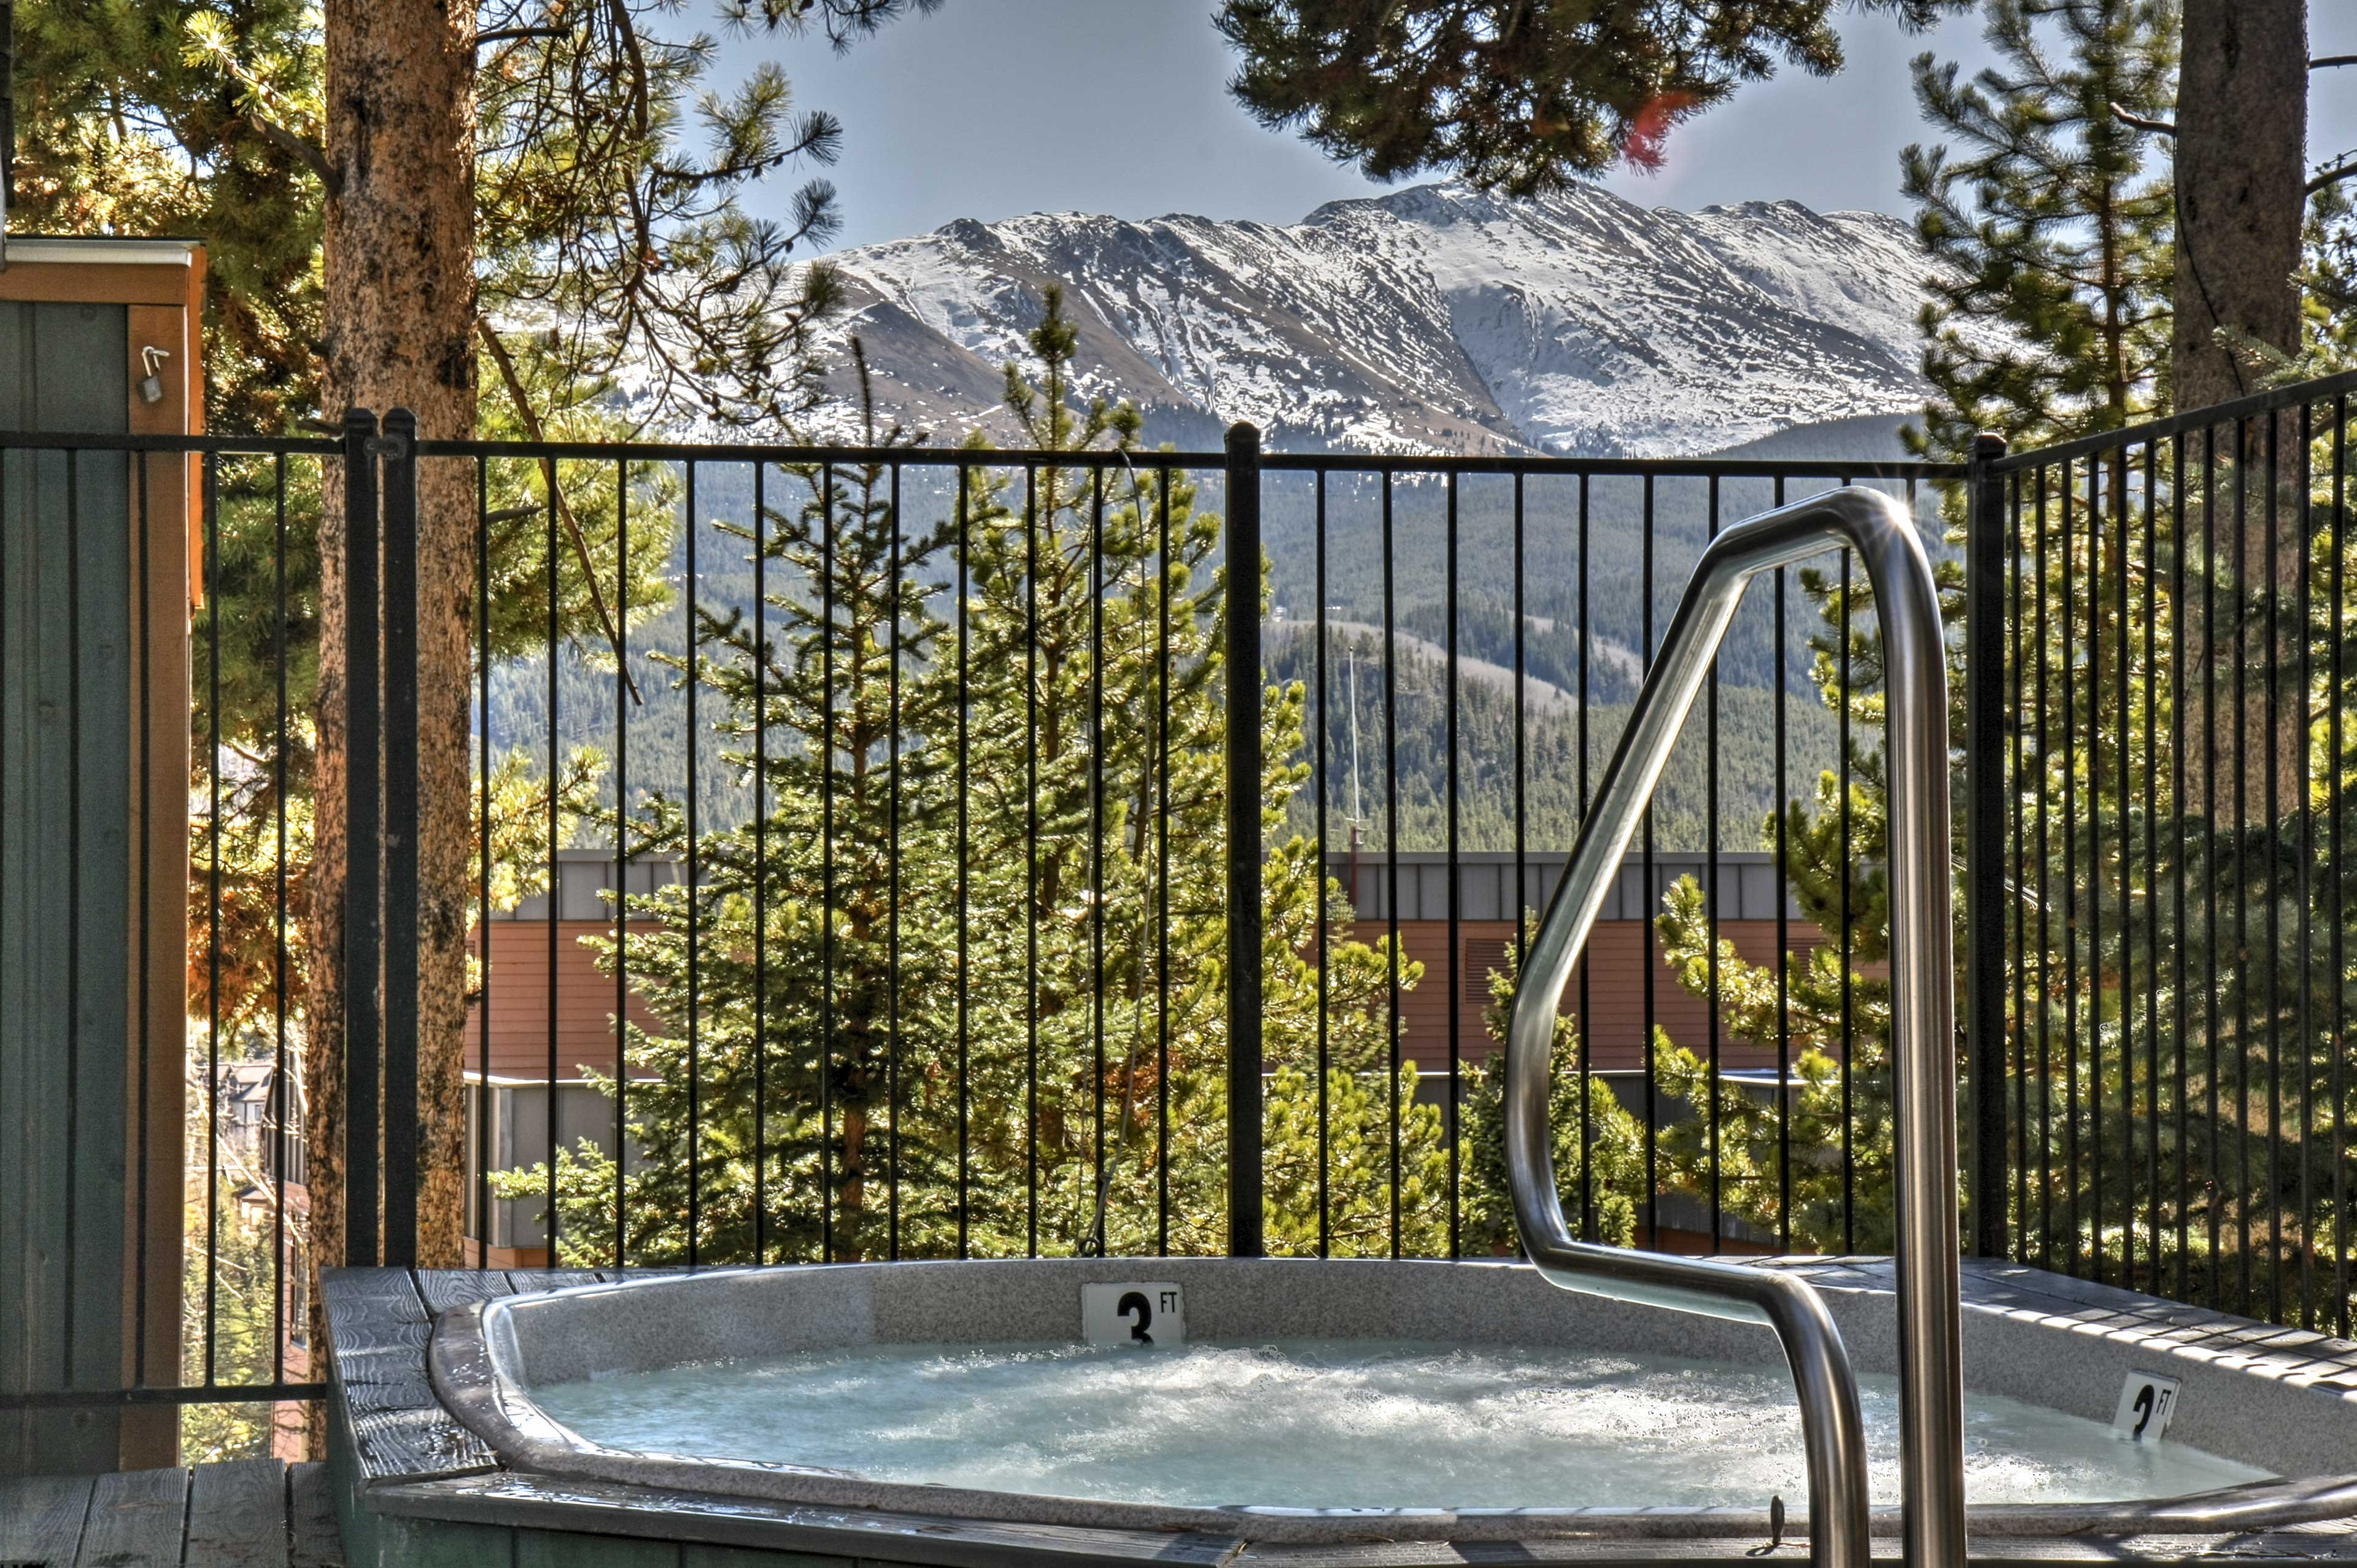 Optimal relaxation awaits at this 3-bed vacation rental in Breckenridge!